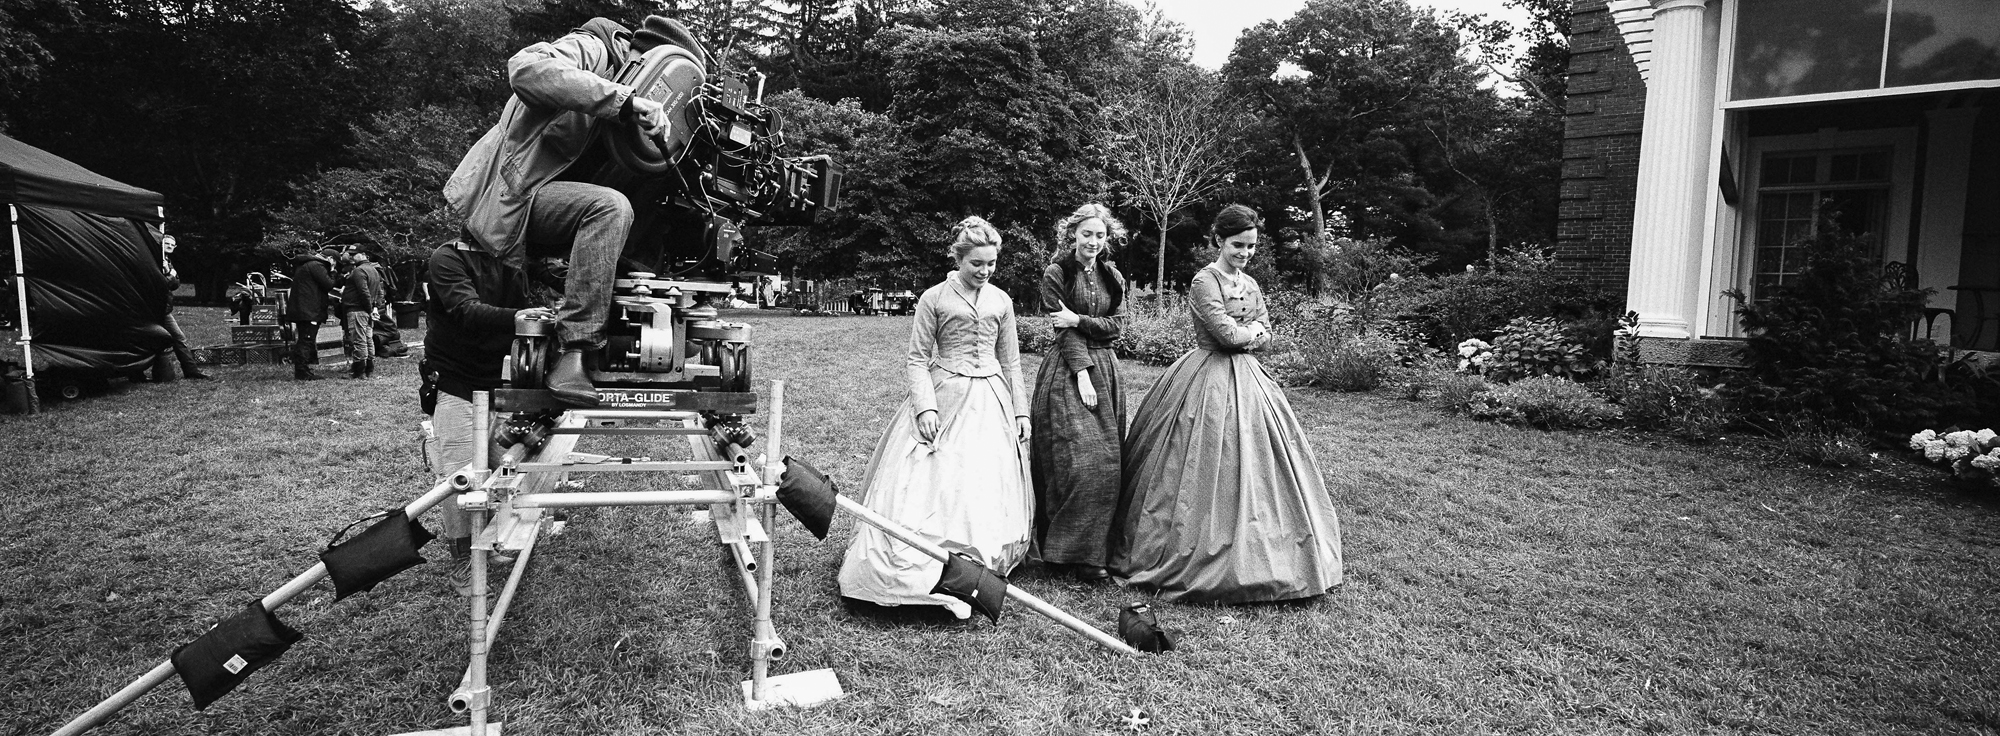 BTS:  DP Yorick LeSaux  Meg March (Emma Watson)  Jo March (Saoirse Ronan)  Amy March (Florence Pugh) on the set of Greta Gerwig's LITTLE WOMEN.   Location:  Bradley Estate  Canton  MA""